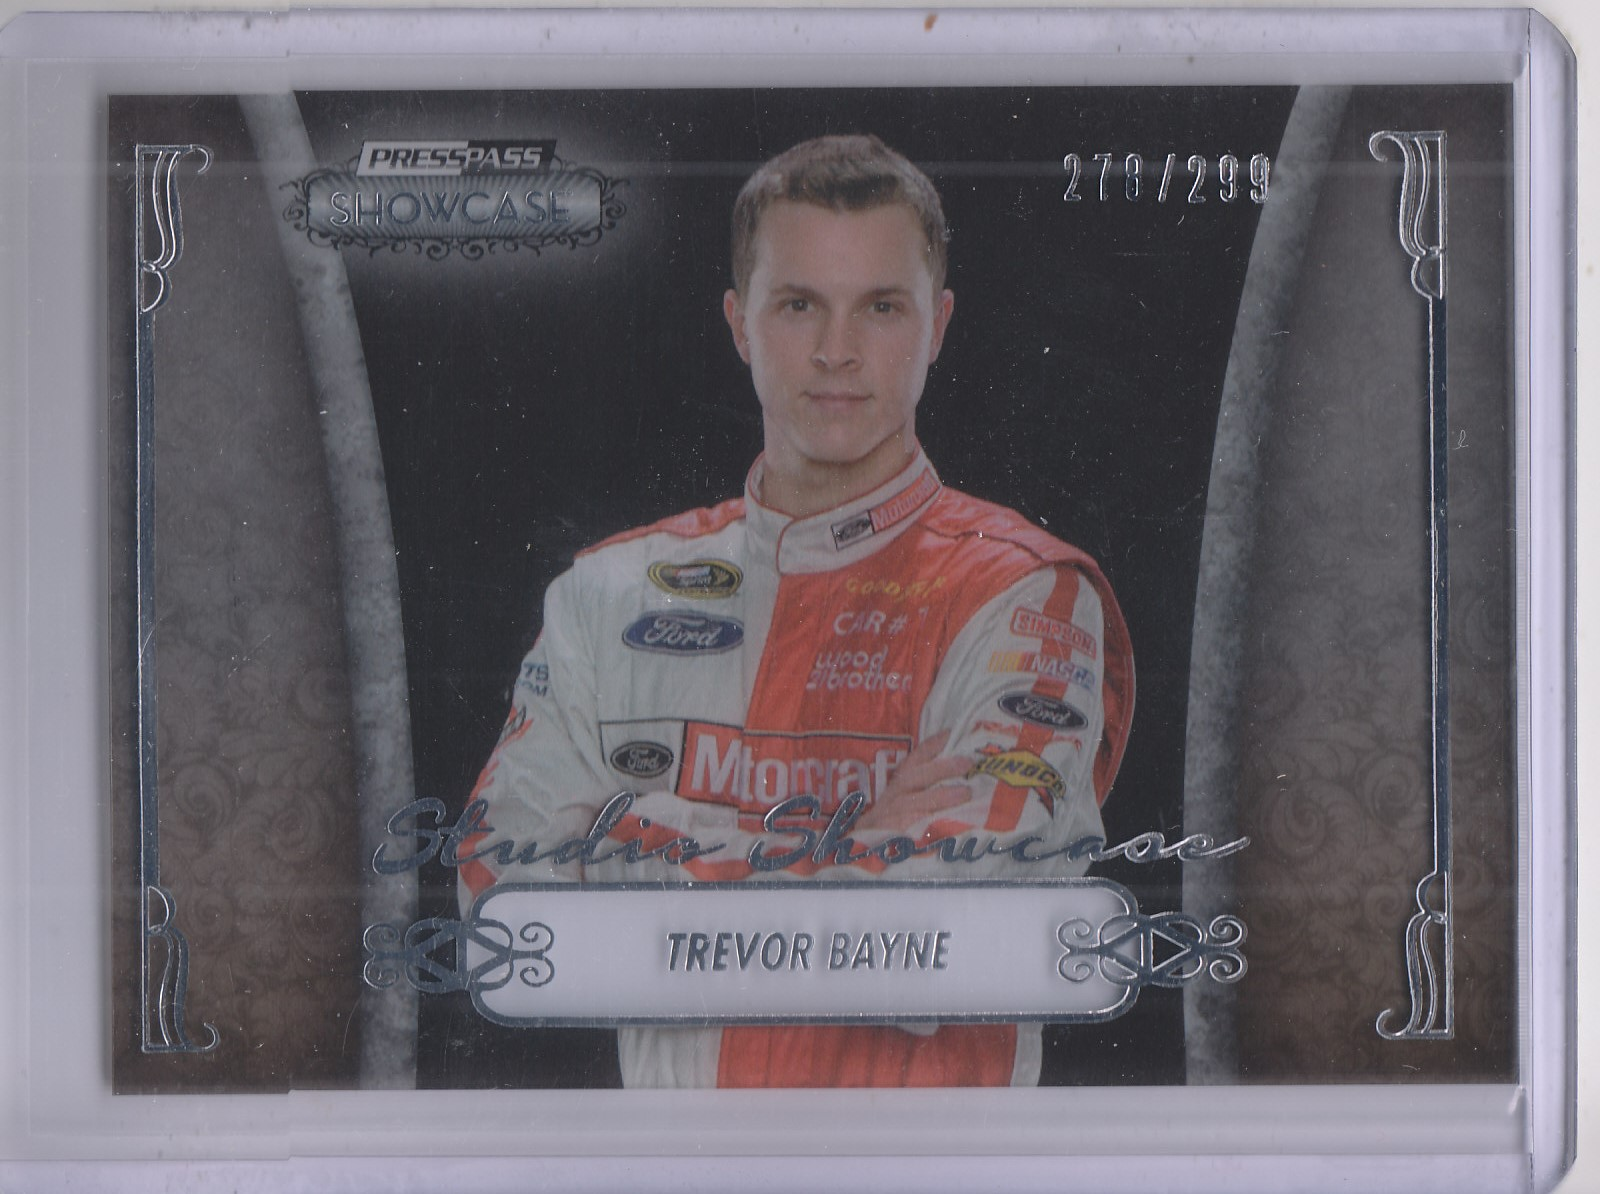 2013 Press Pass Showcase Studio Showcase #1 Trevor Bayne